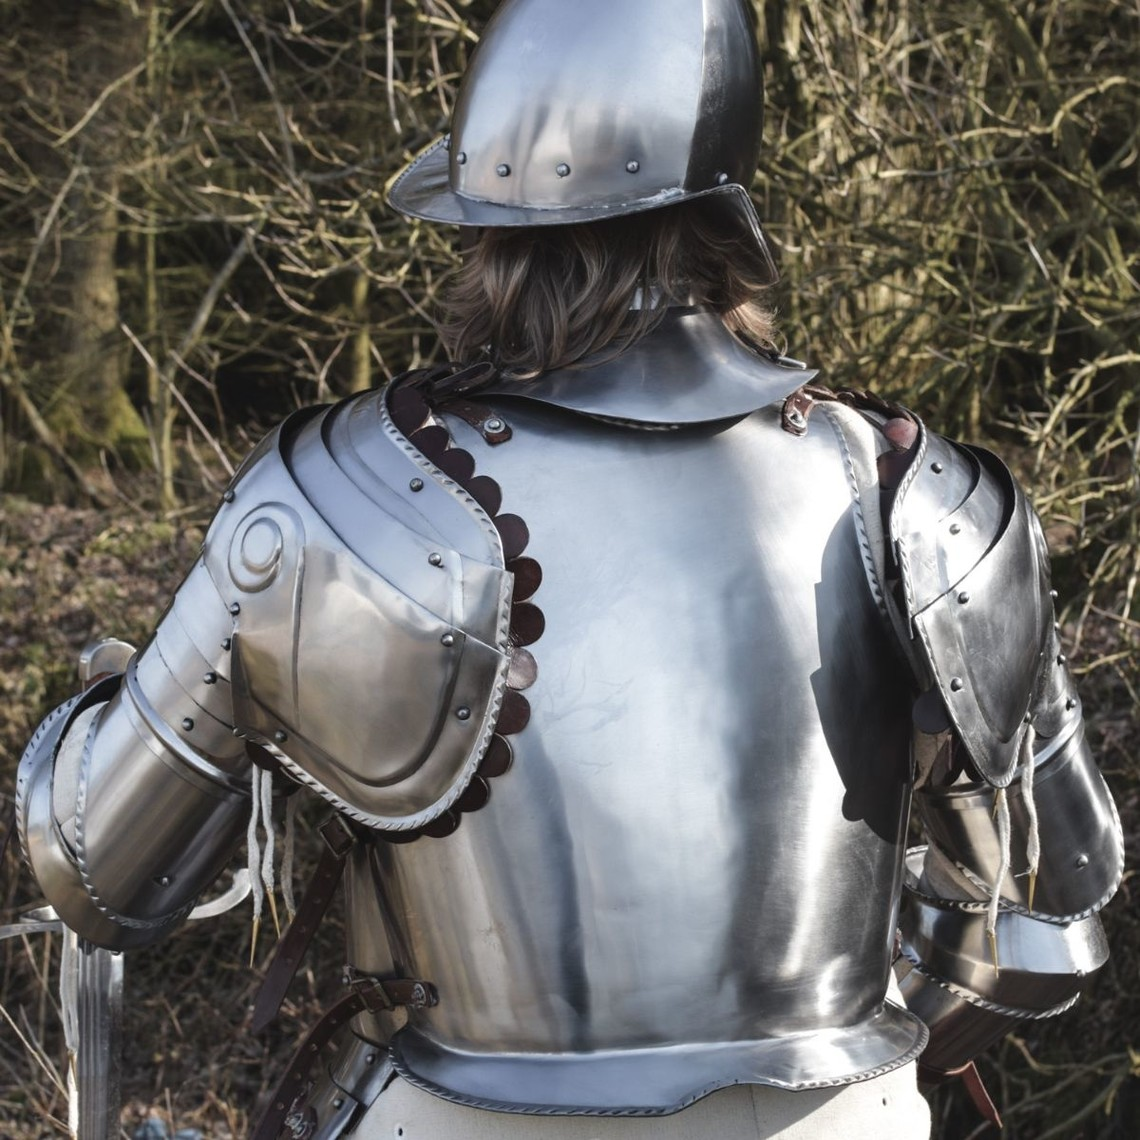 Deepeeka Suit of armour 16th century